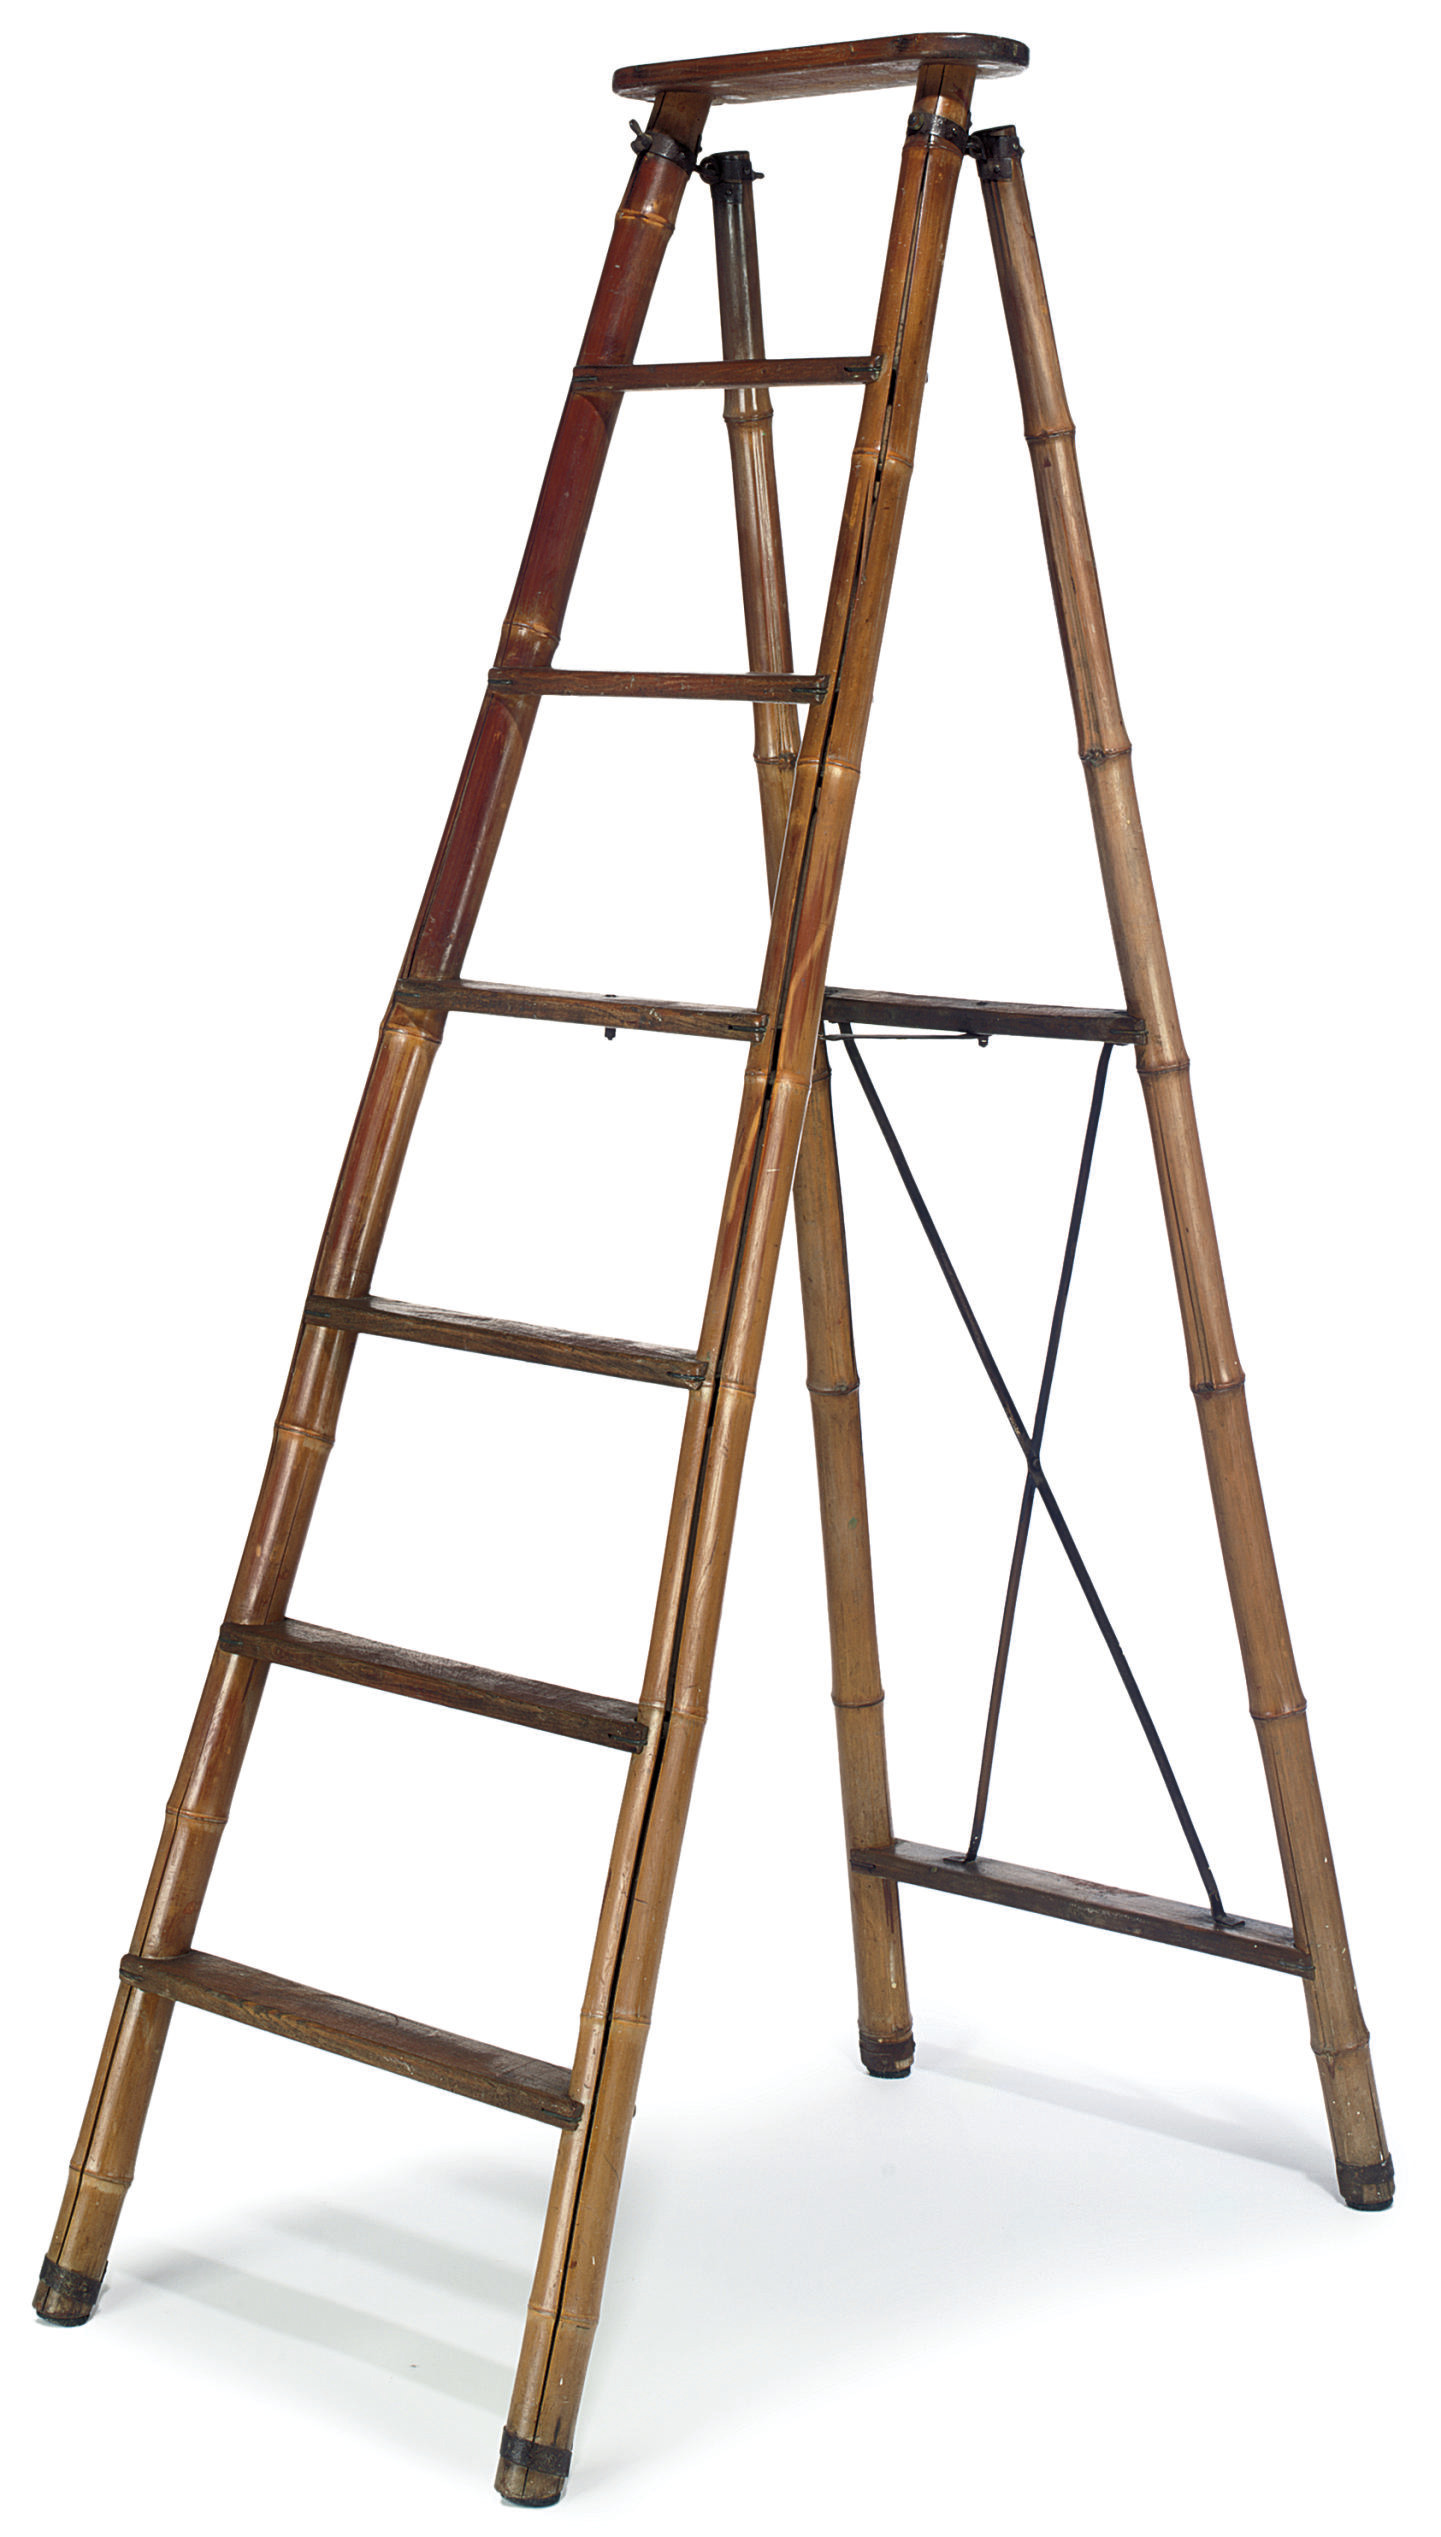 A BAMBOO AND ASH STEP LADDER